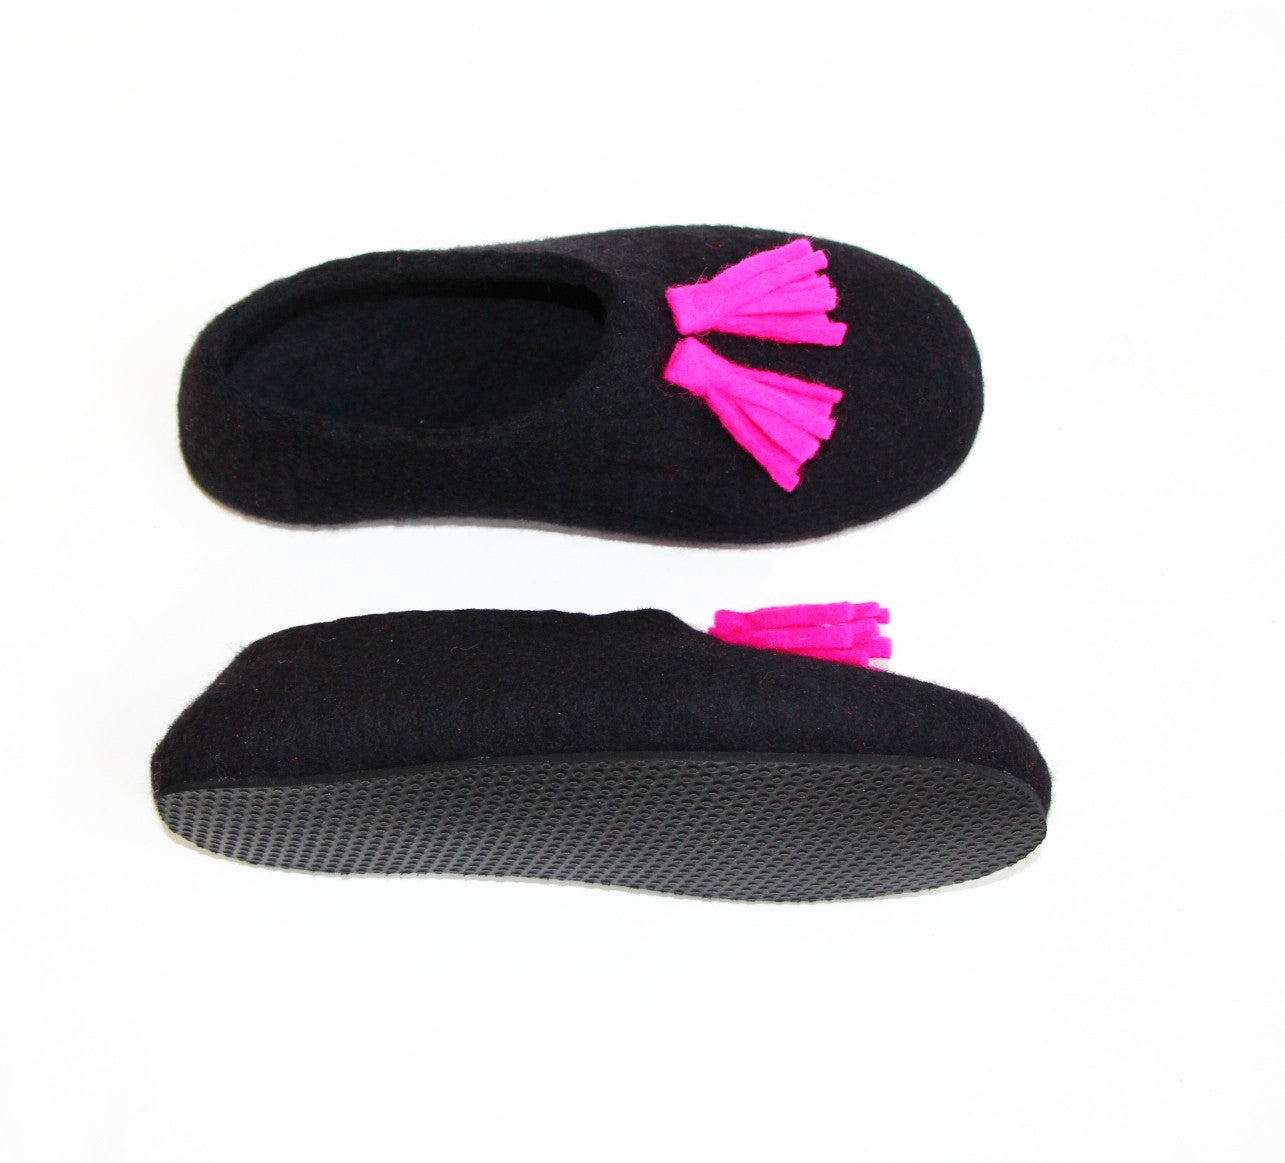 Womens Tassel Slippers Black Fuchsia Contrast Sole - Wool Walker  - 2